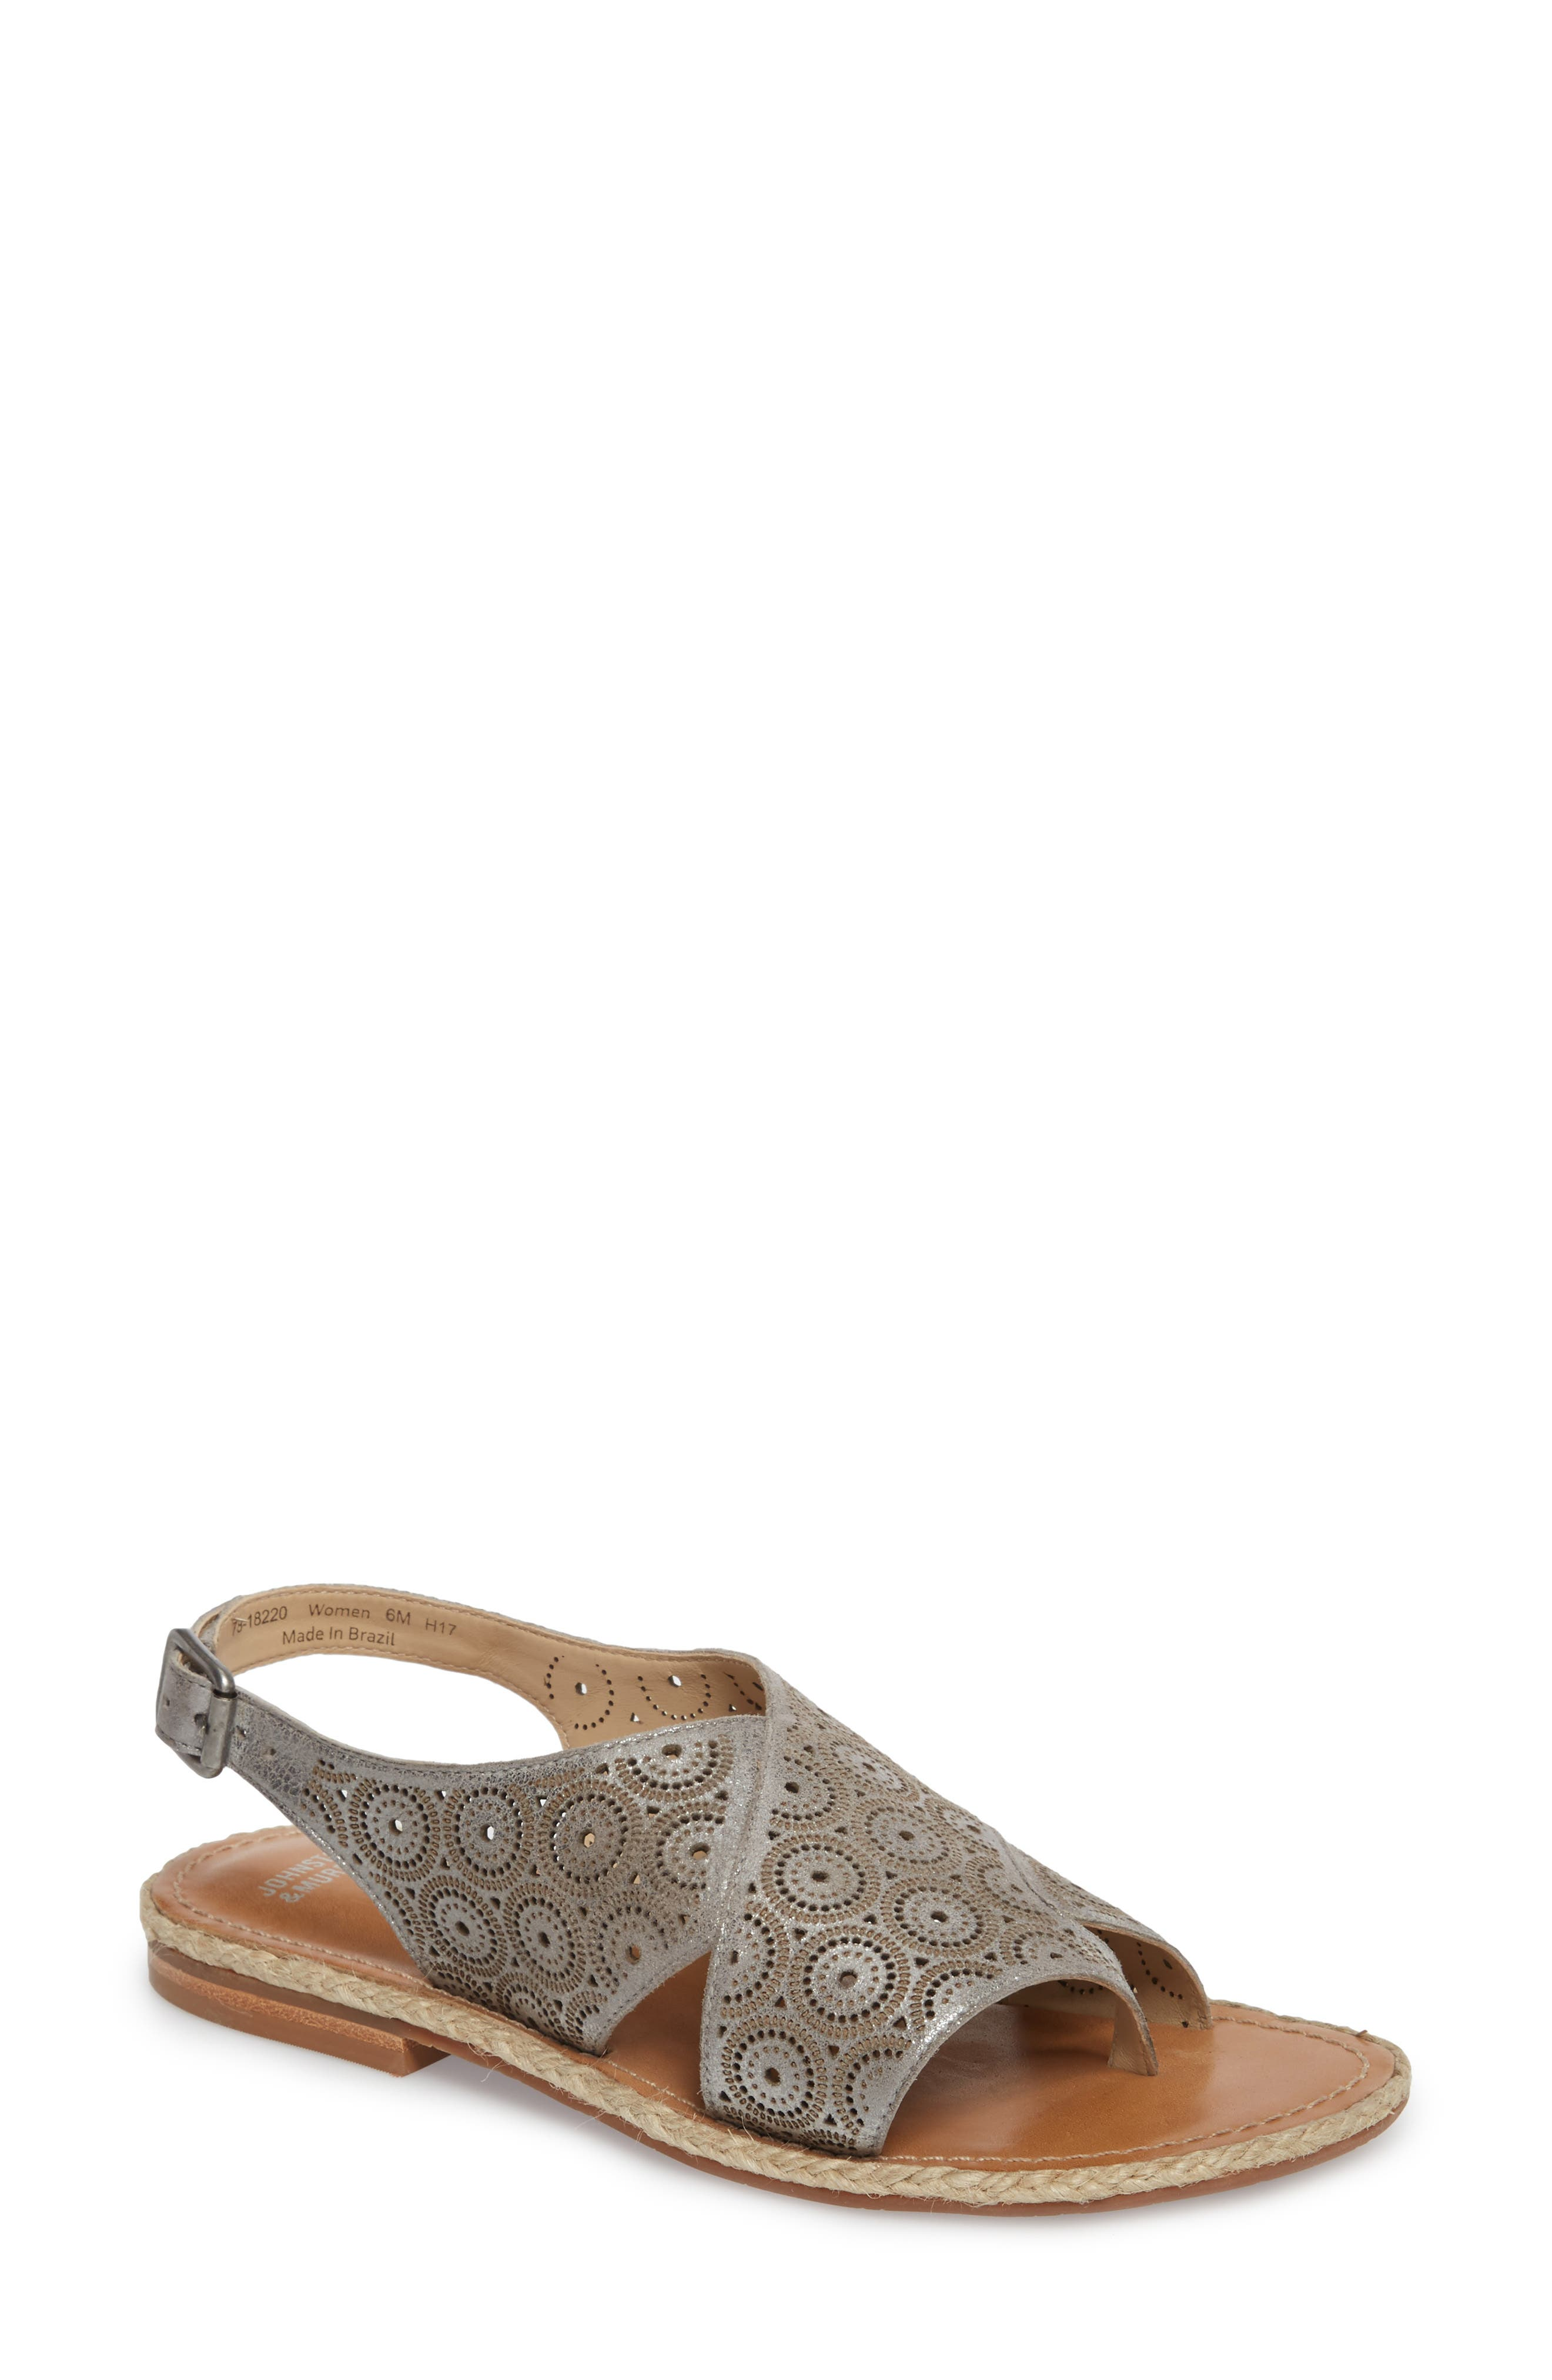 Willow Flat Sandal,                             Main thumbnail 1, color,                             Pewter Leather